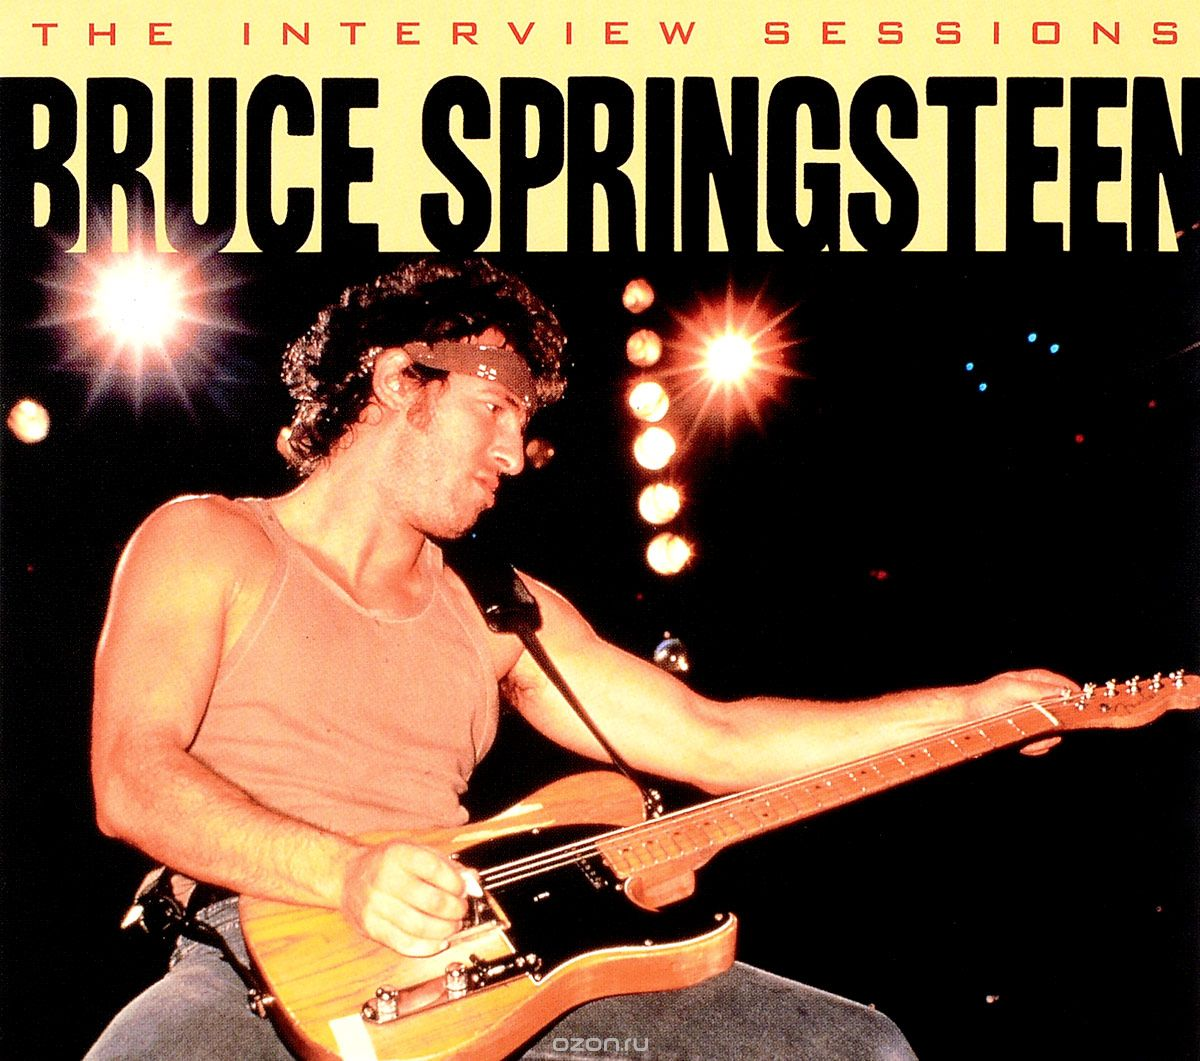 Bruce Springsteen. The Interview Sessions